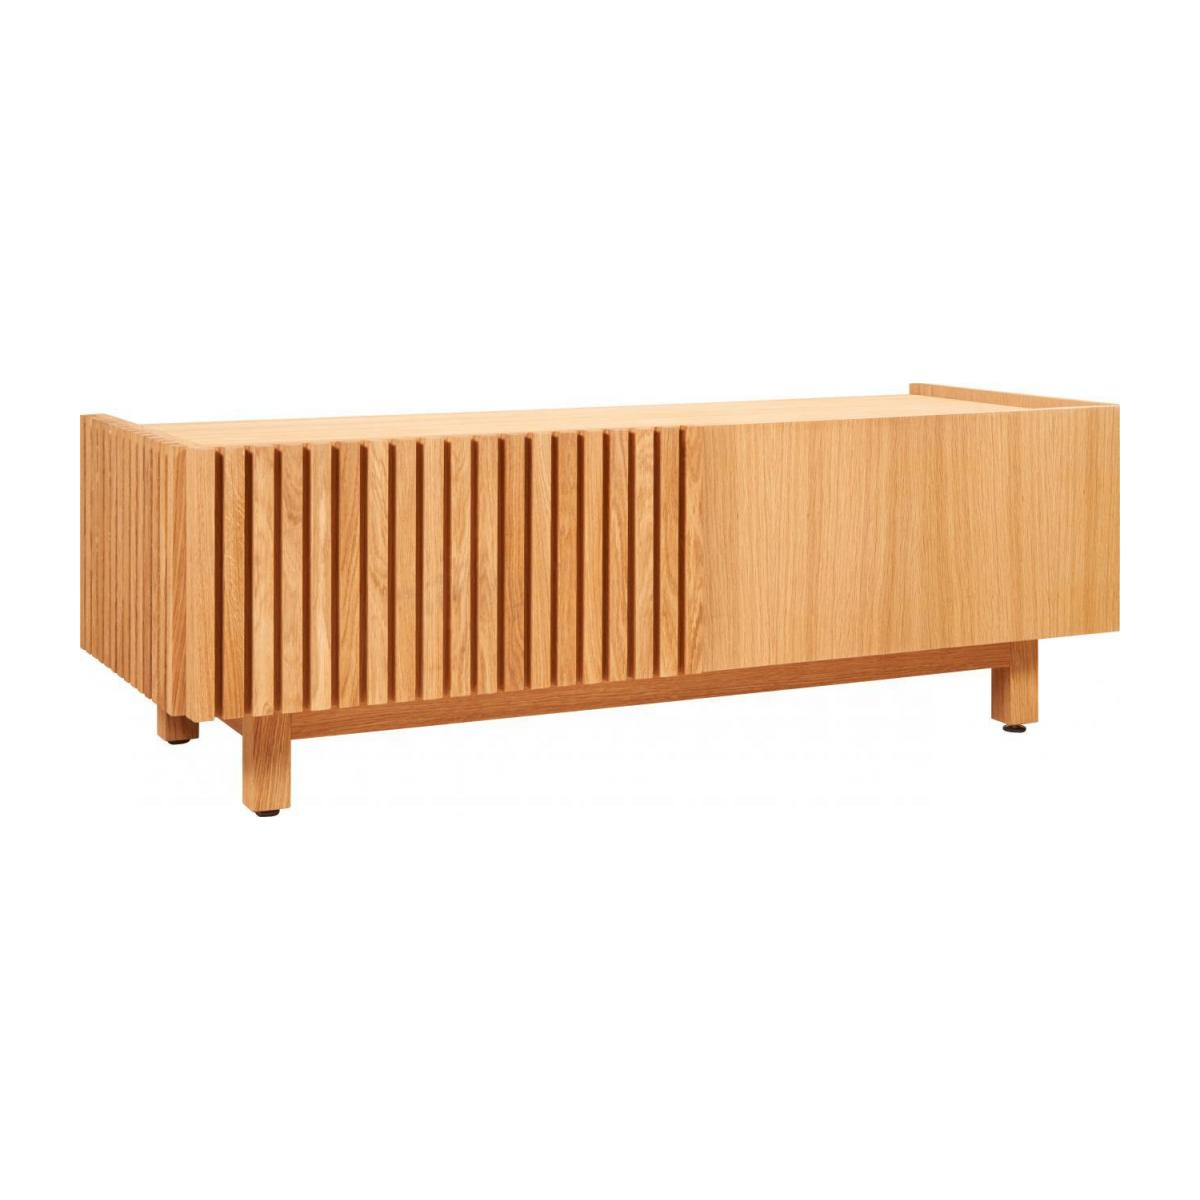 Audio video oak stand n°1